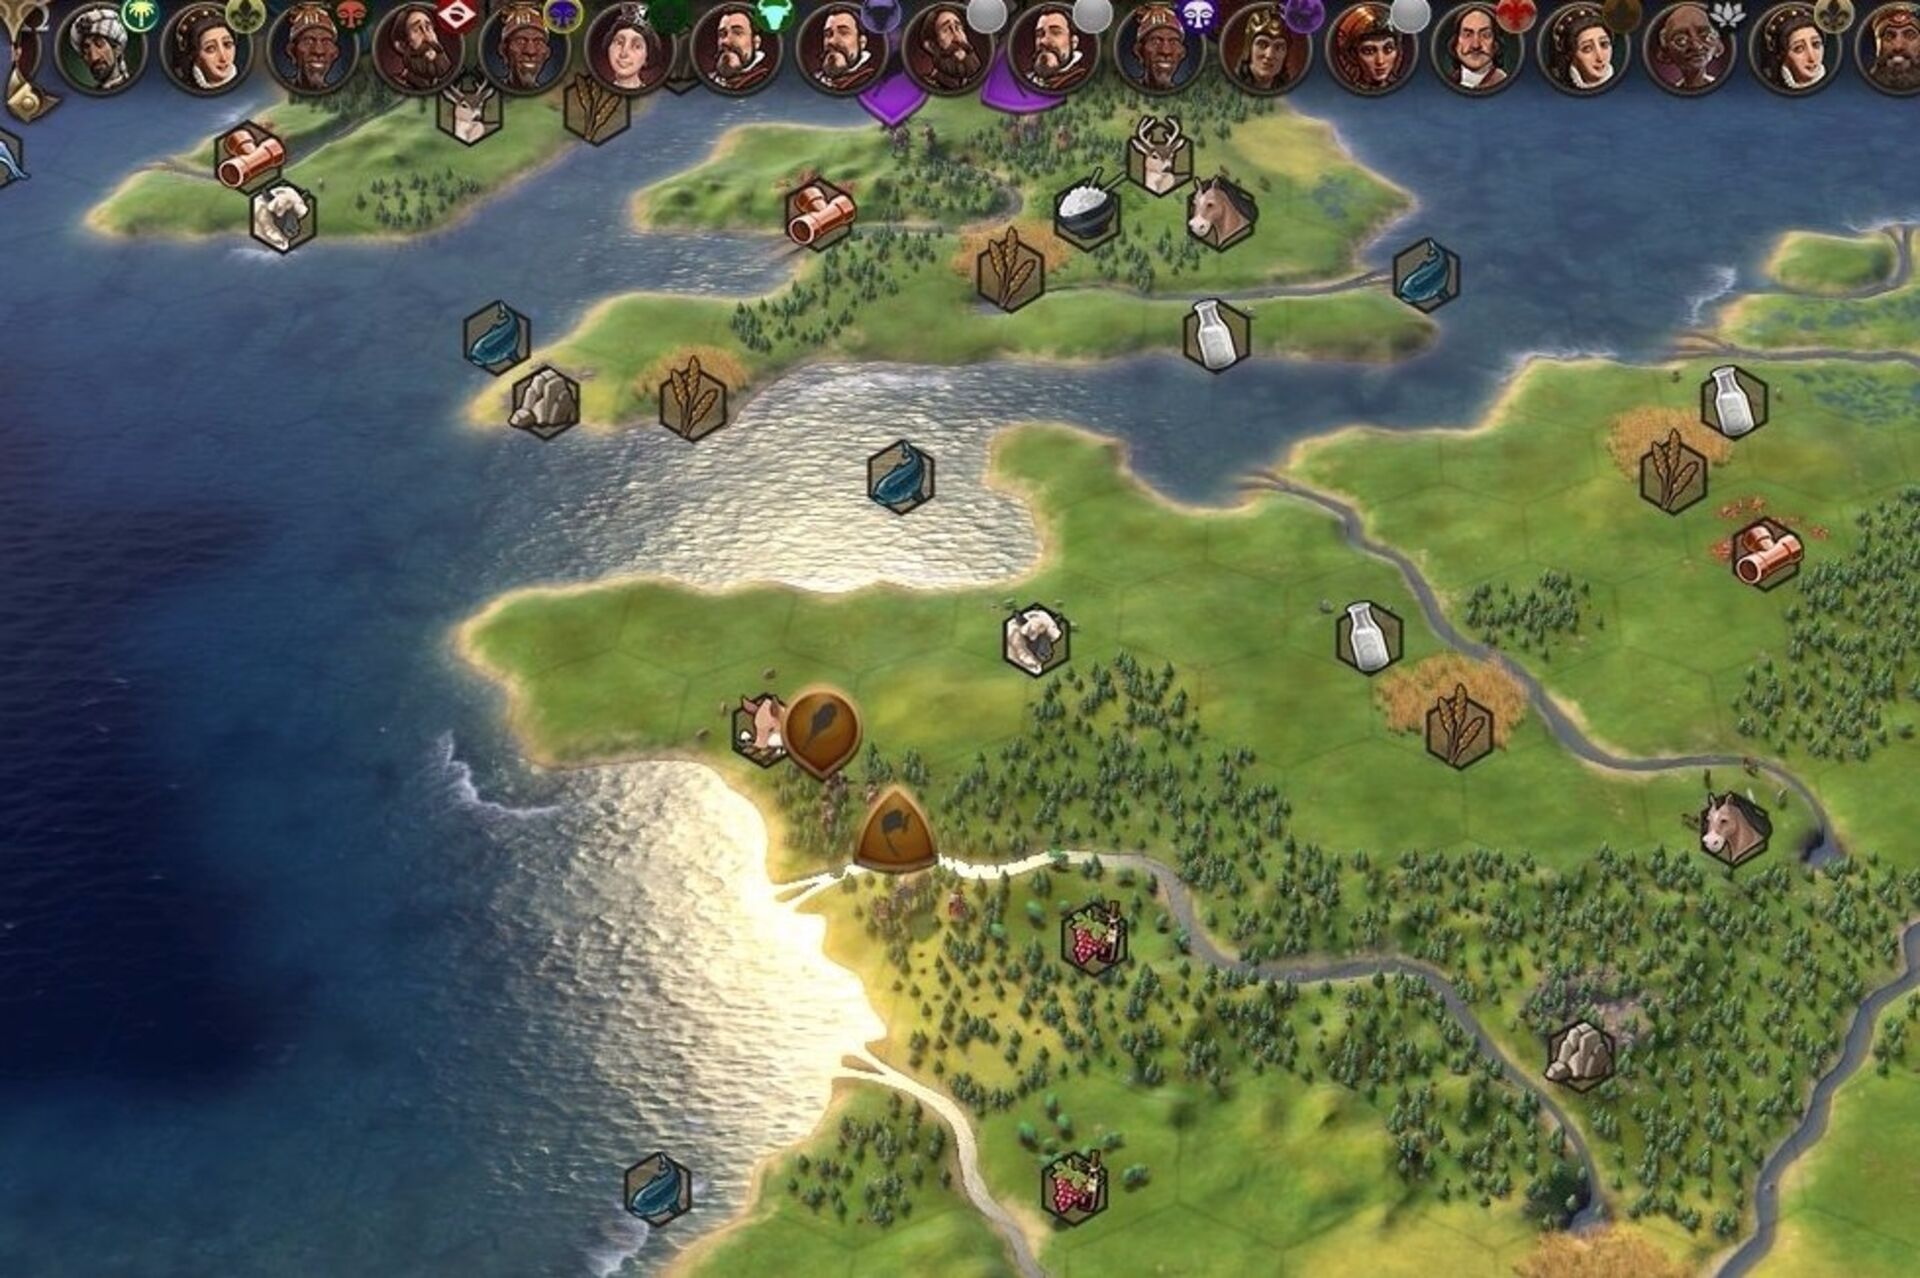 Now Civilization 6 has an Earth map mod but it's Ludicrously big